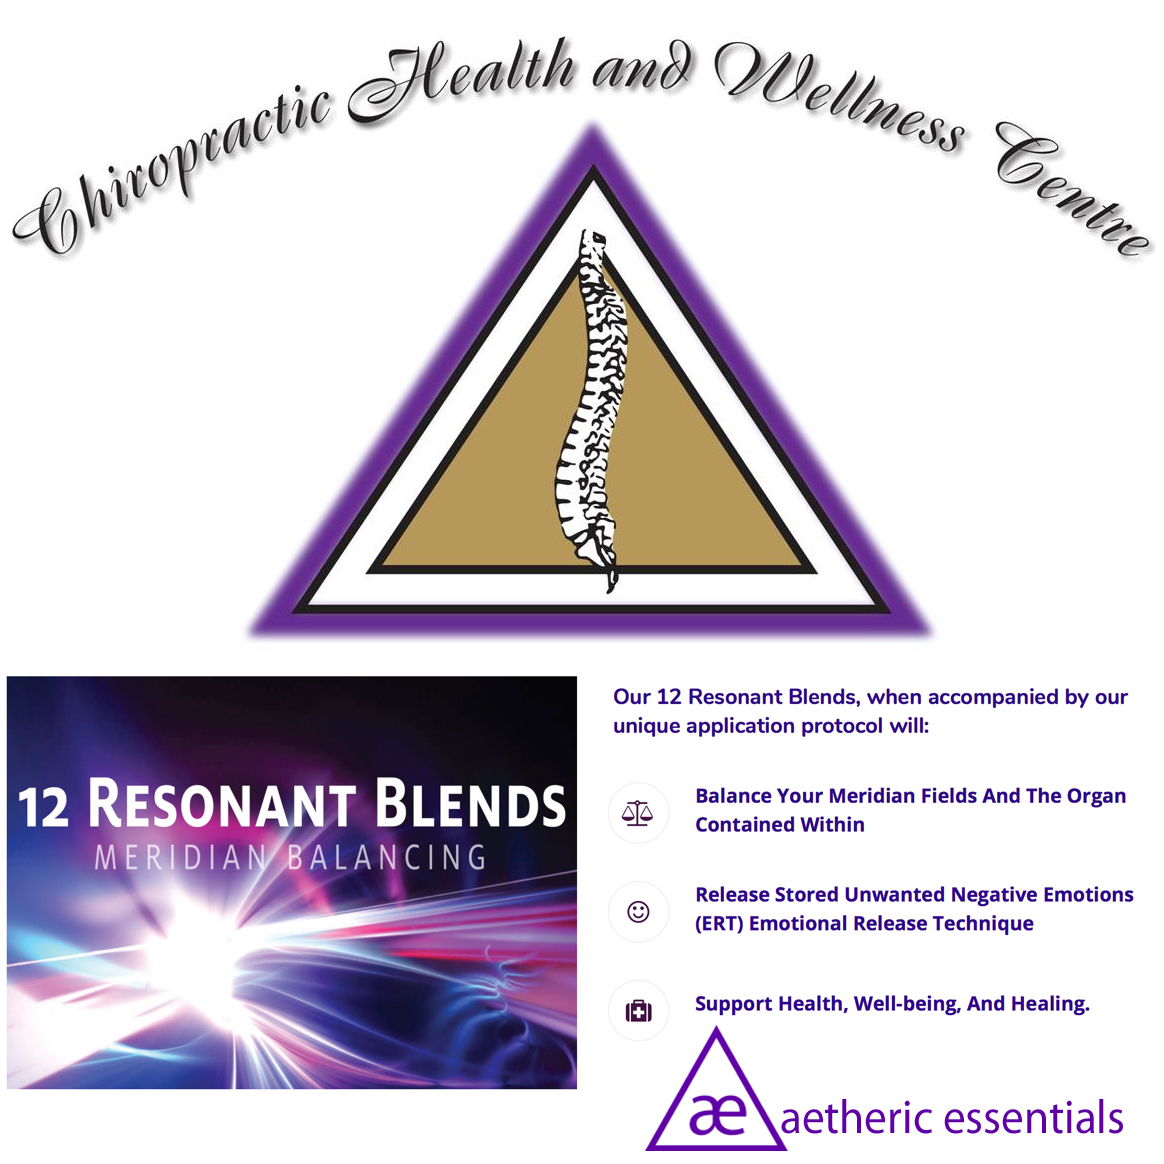 May 4th 2019, 12 Resonant Blends & Emotional Release Technique (ERT) Advanced Training @ Chiropractic Health and Wellness Center 919 Oxford St. E. London, Ontario N5Y3J8